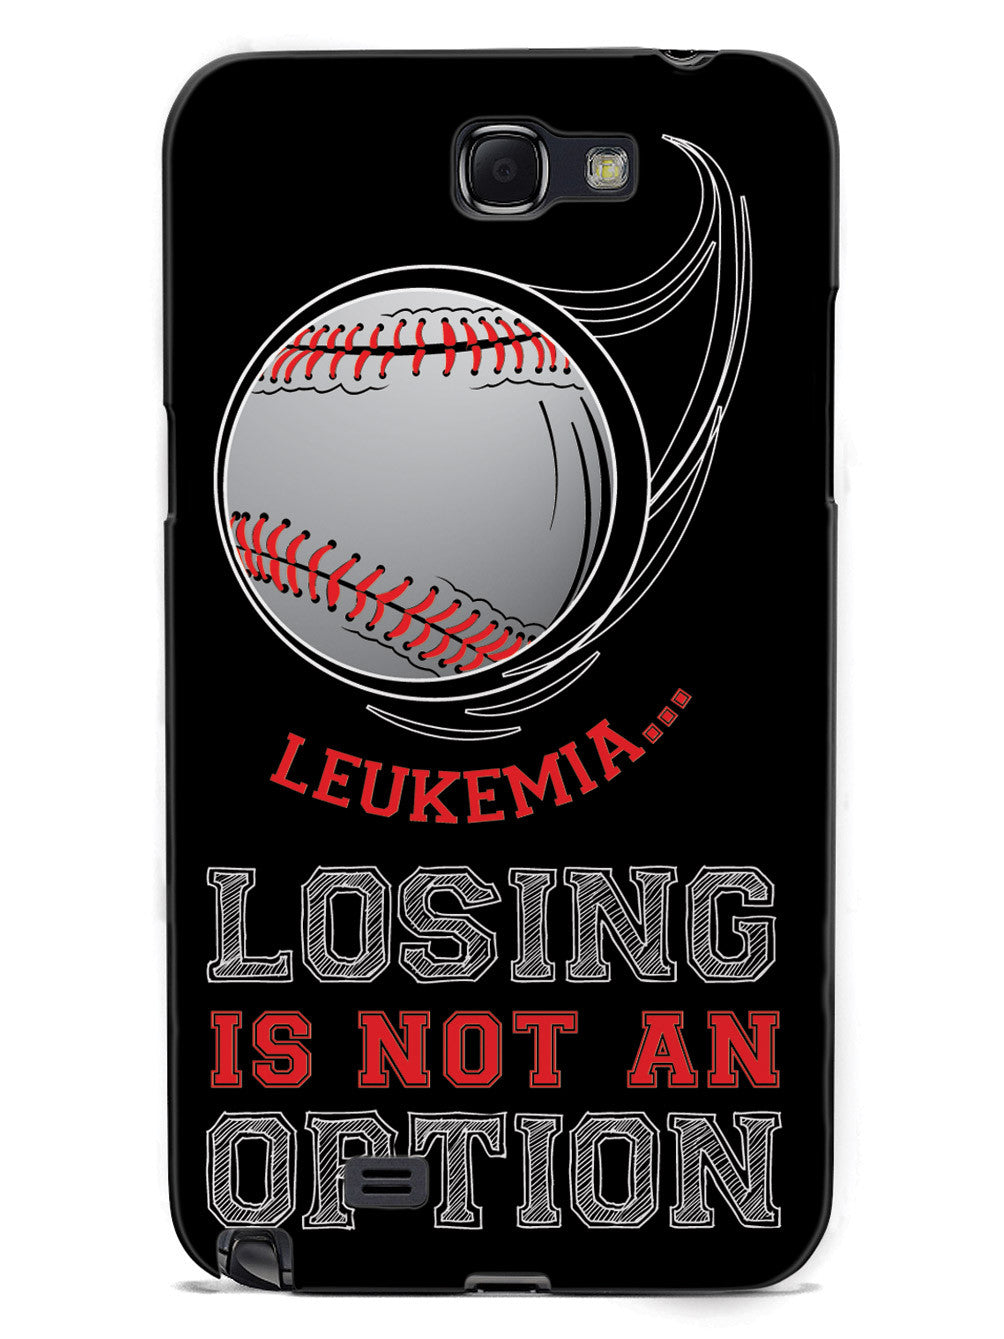 Leukemia - Losing is not an Option Black Baseball Case